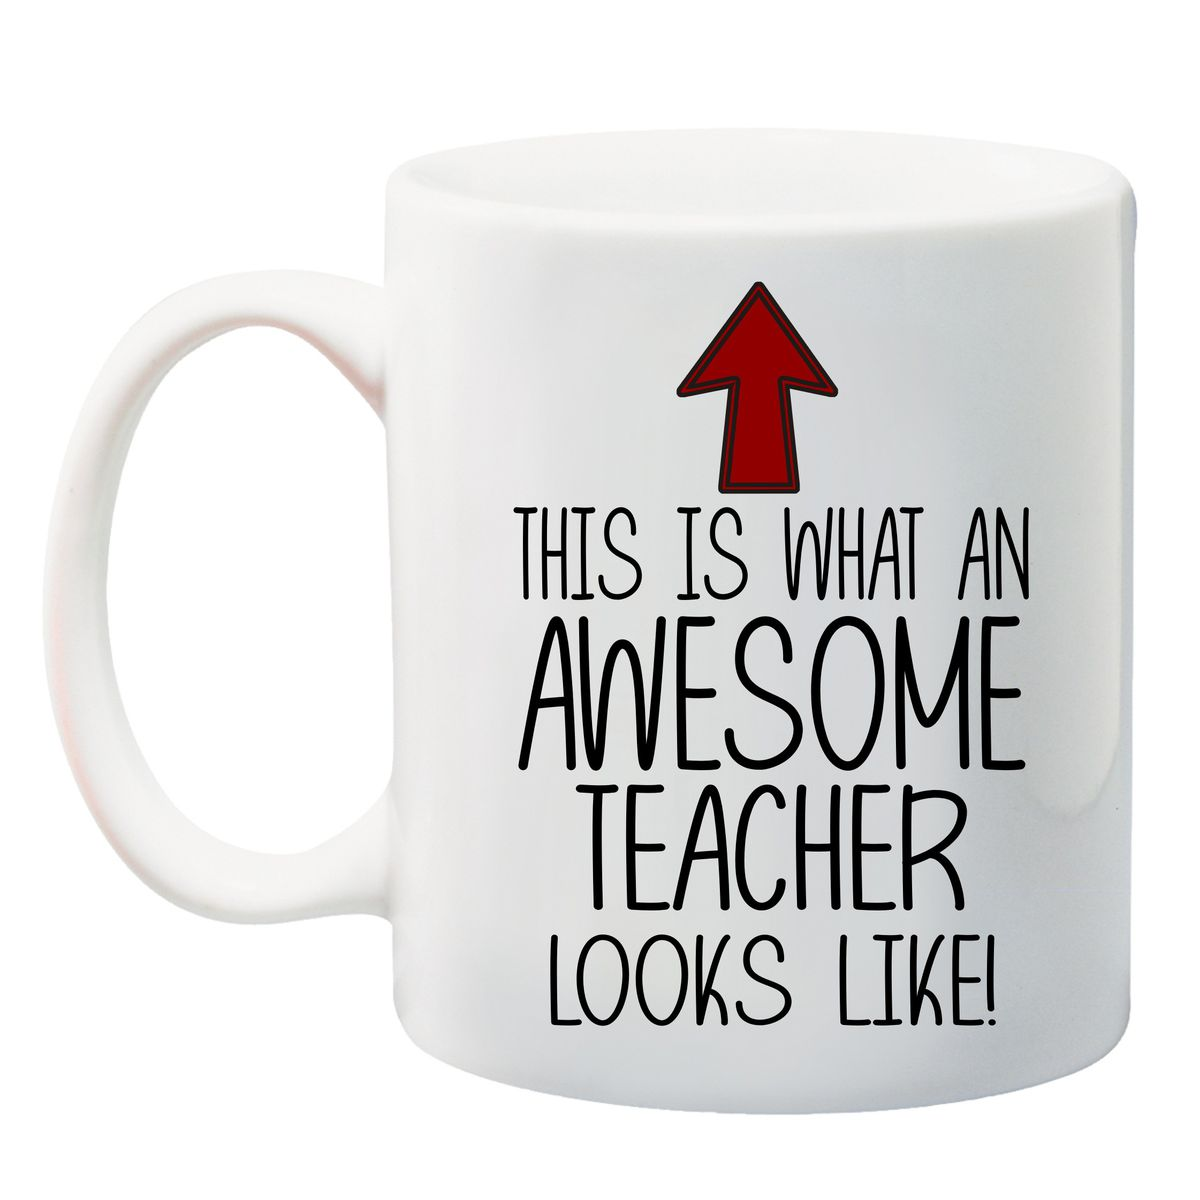 qtees africa this is what an awesome teacher looks like printed mug